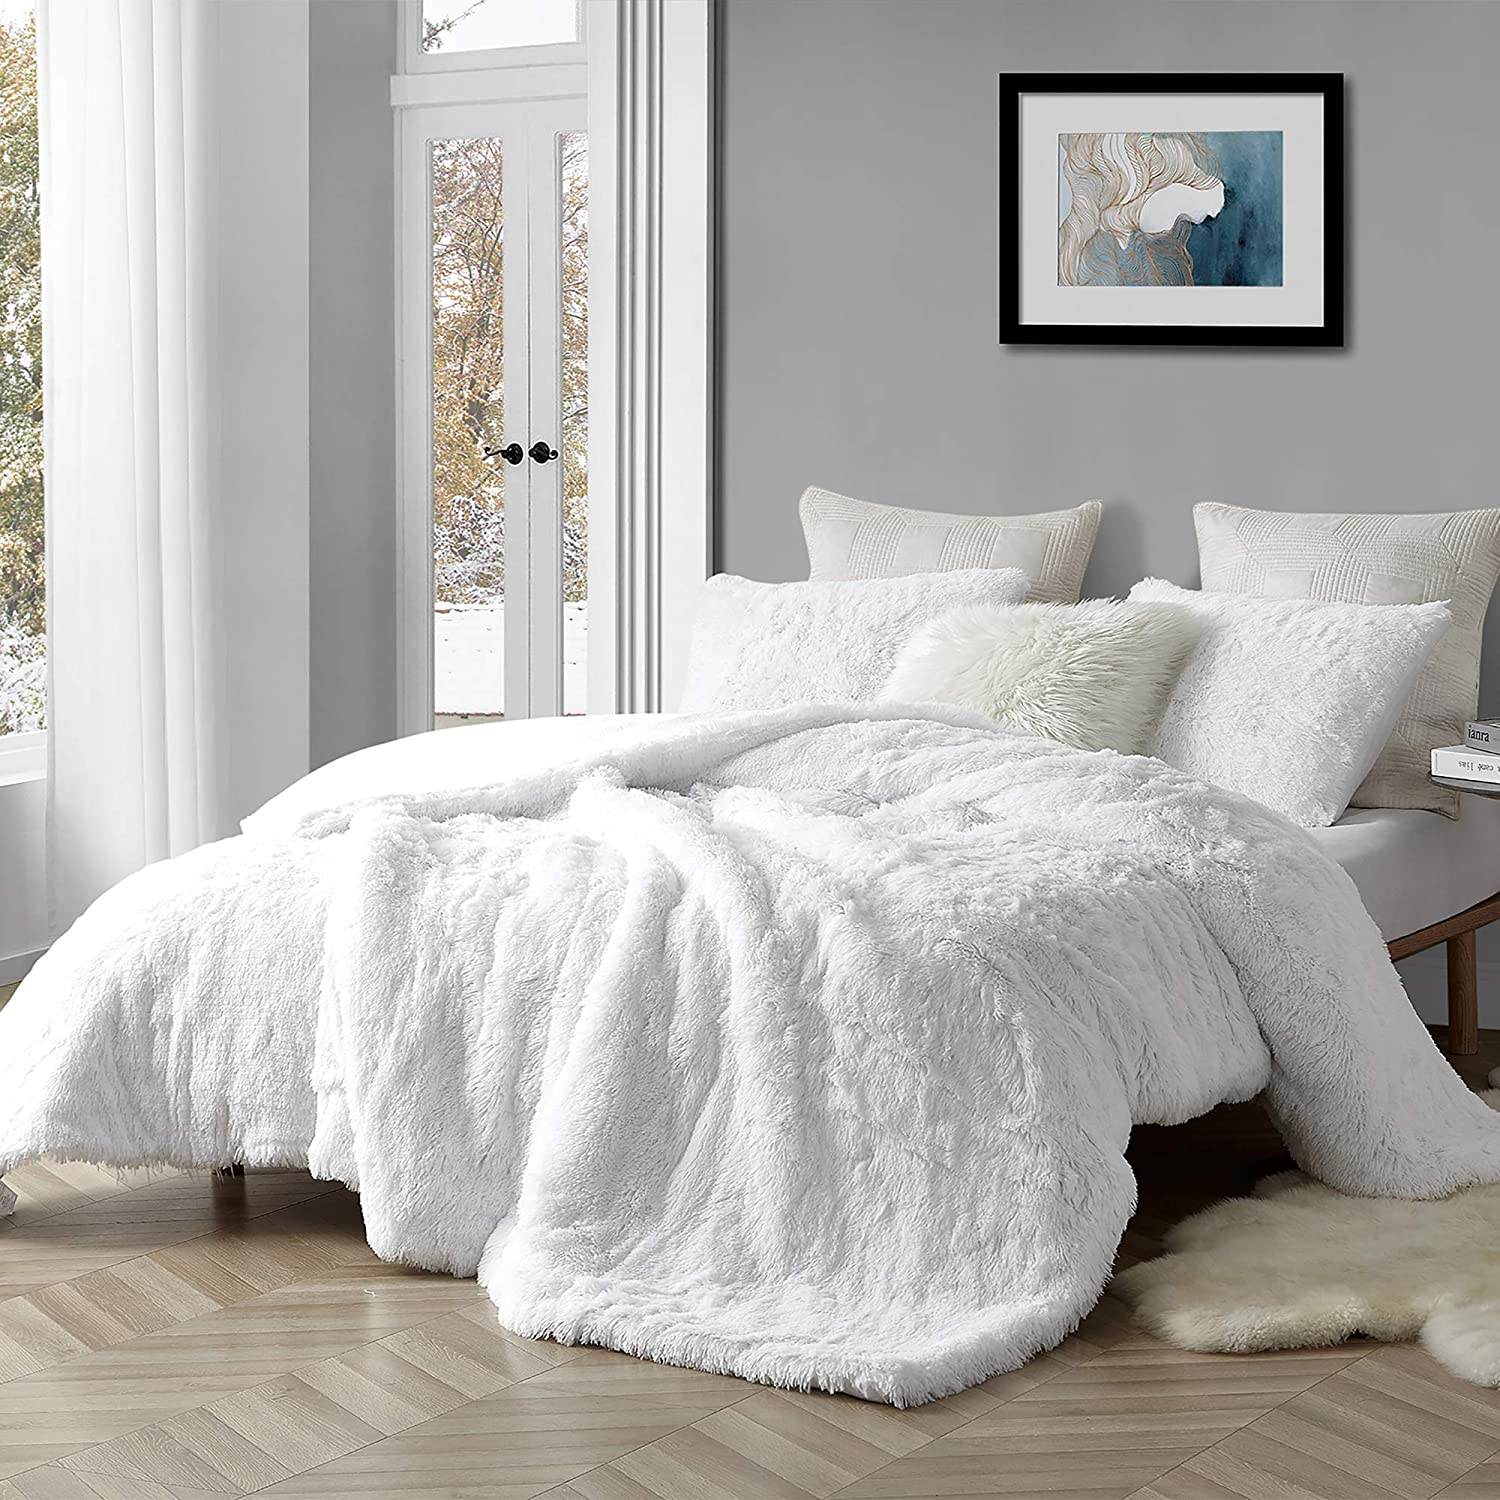 Byourbed Coma Many popular brands Inducer Oversized Popular brand in the world Twin XL - Comforter Kidd are You